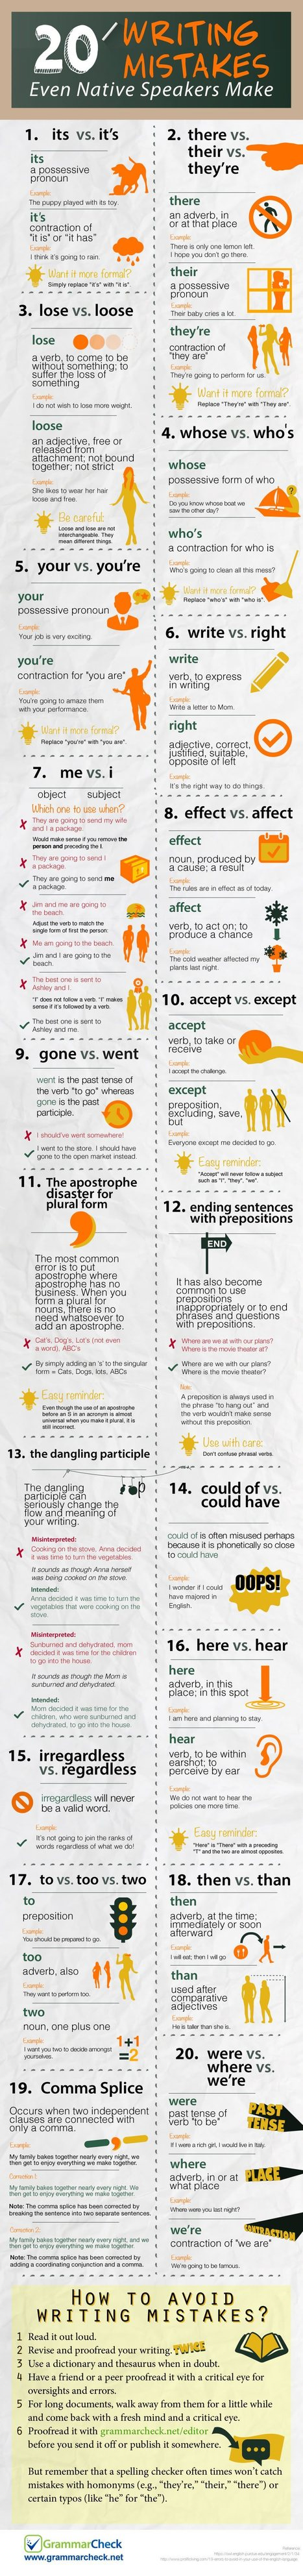 20 Writing Mistakes Even Native Speakers Make #Infographic | MarketingHits | Scoop.it